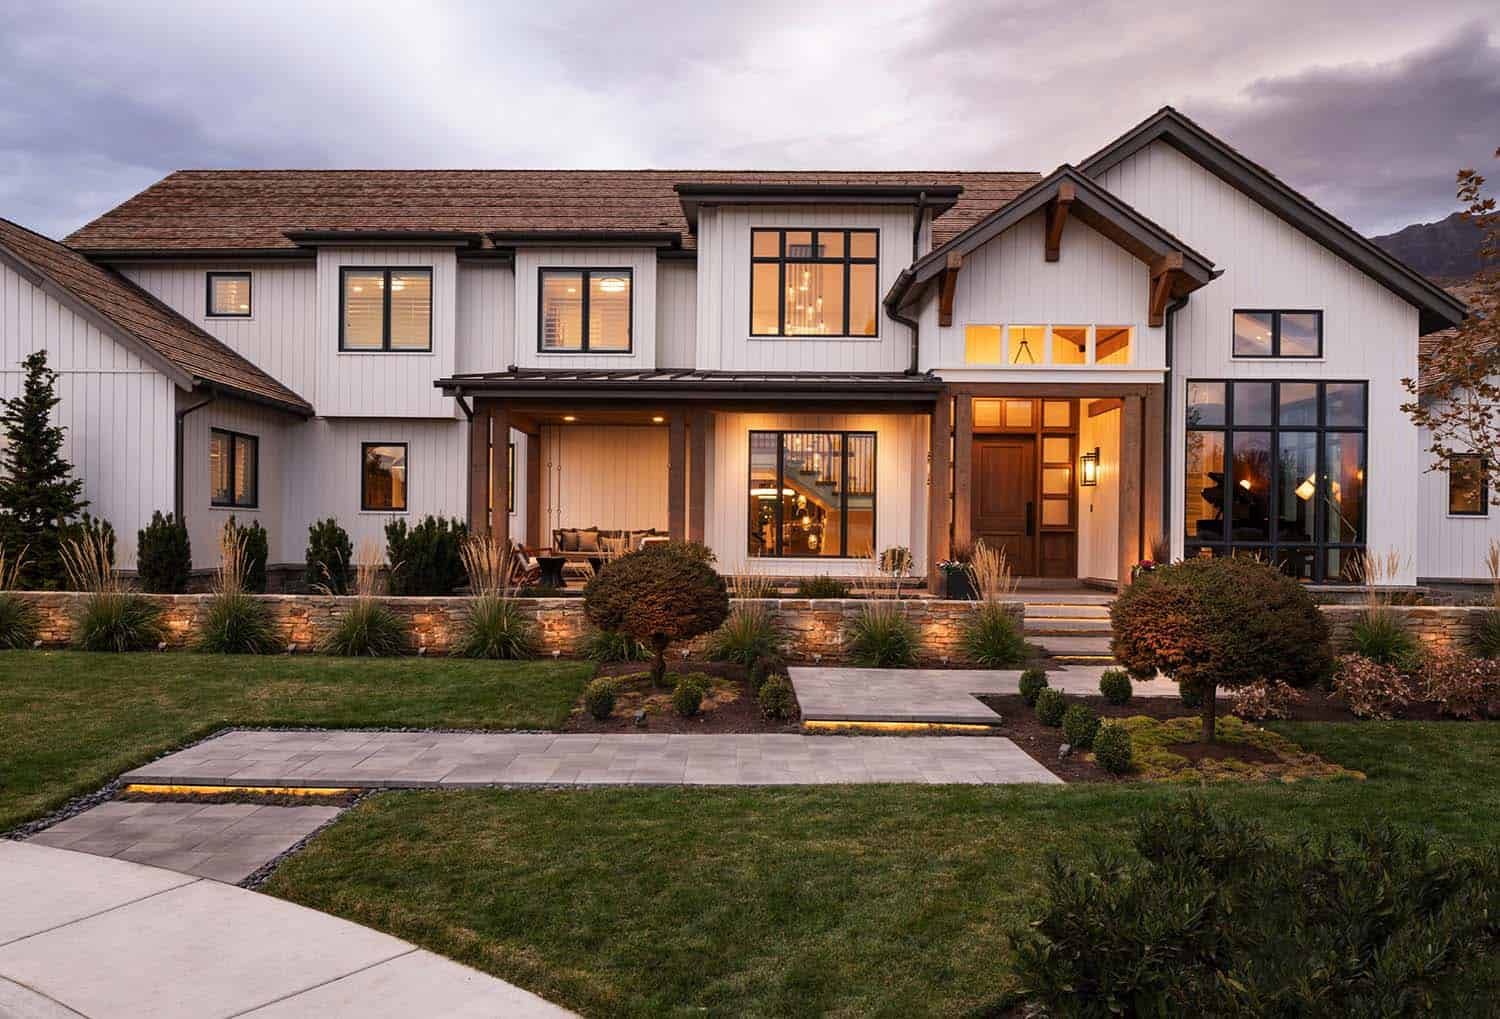 Dream House Tour: Modern design meets cozy farmhouse style in Utah